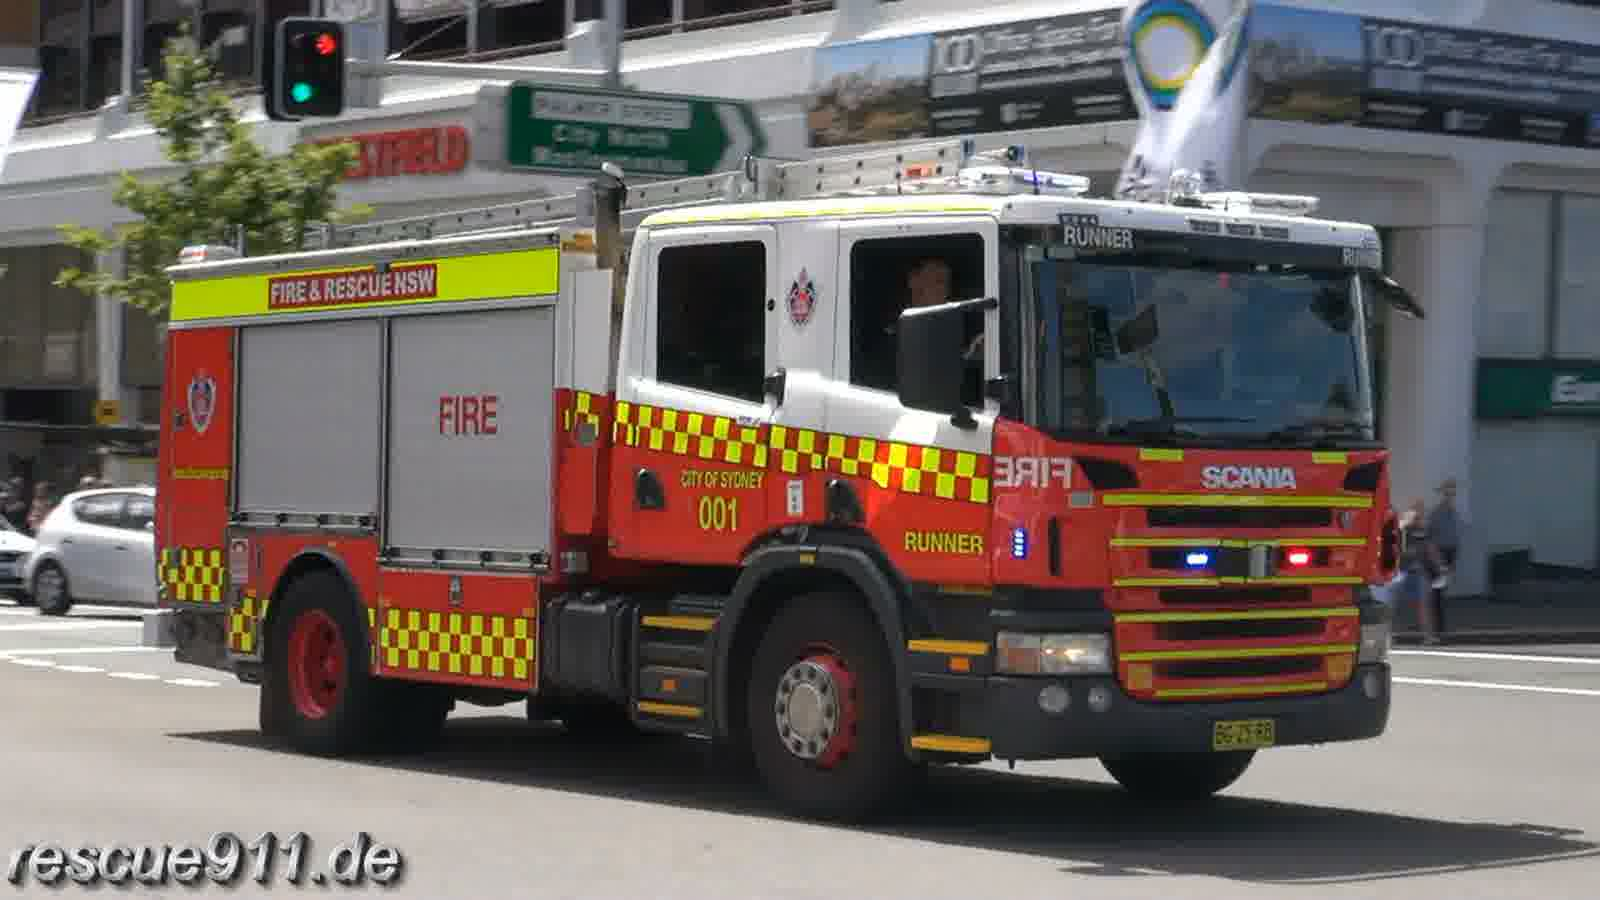 Pump Flyer 001 + Pump Runner 001 City of Sydney Fire & Rescue NSW (stream)